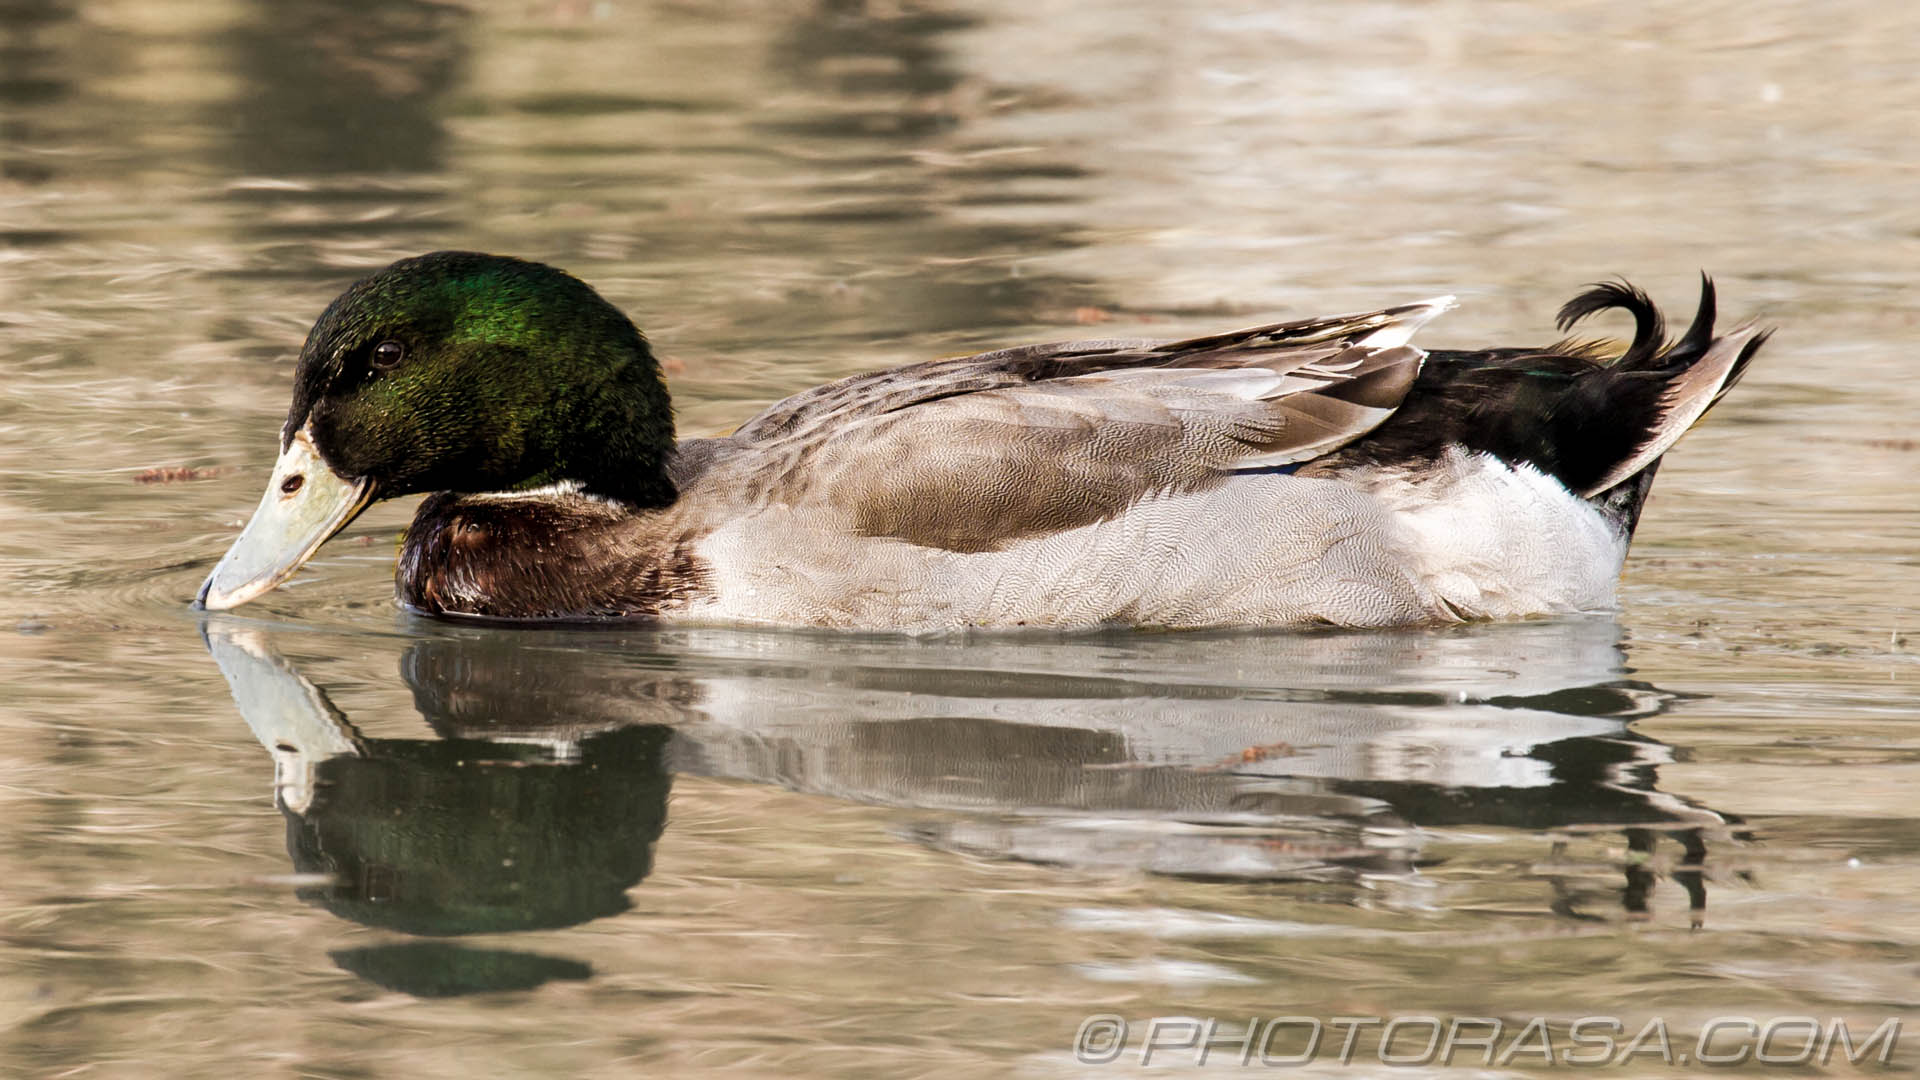 http://photorasa.com/manky-mallards/mallard-gadwall-with-white-beak/